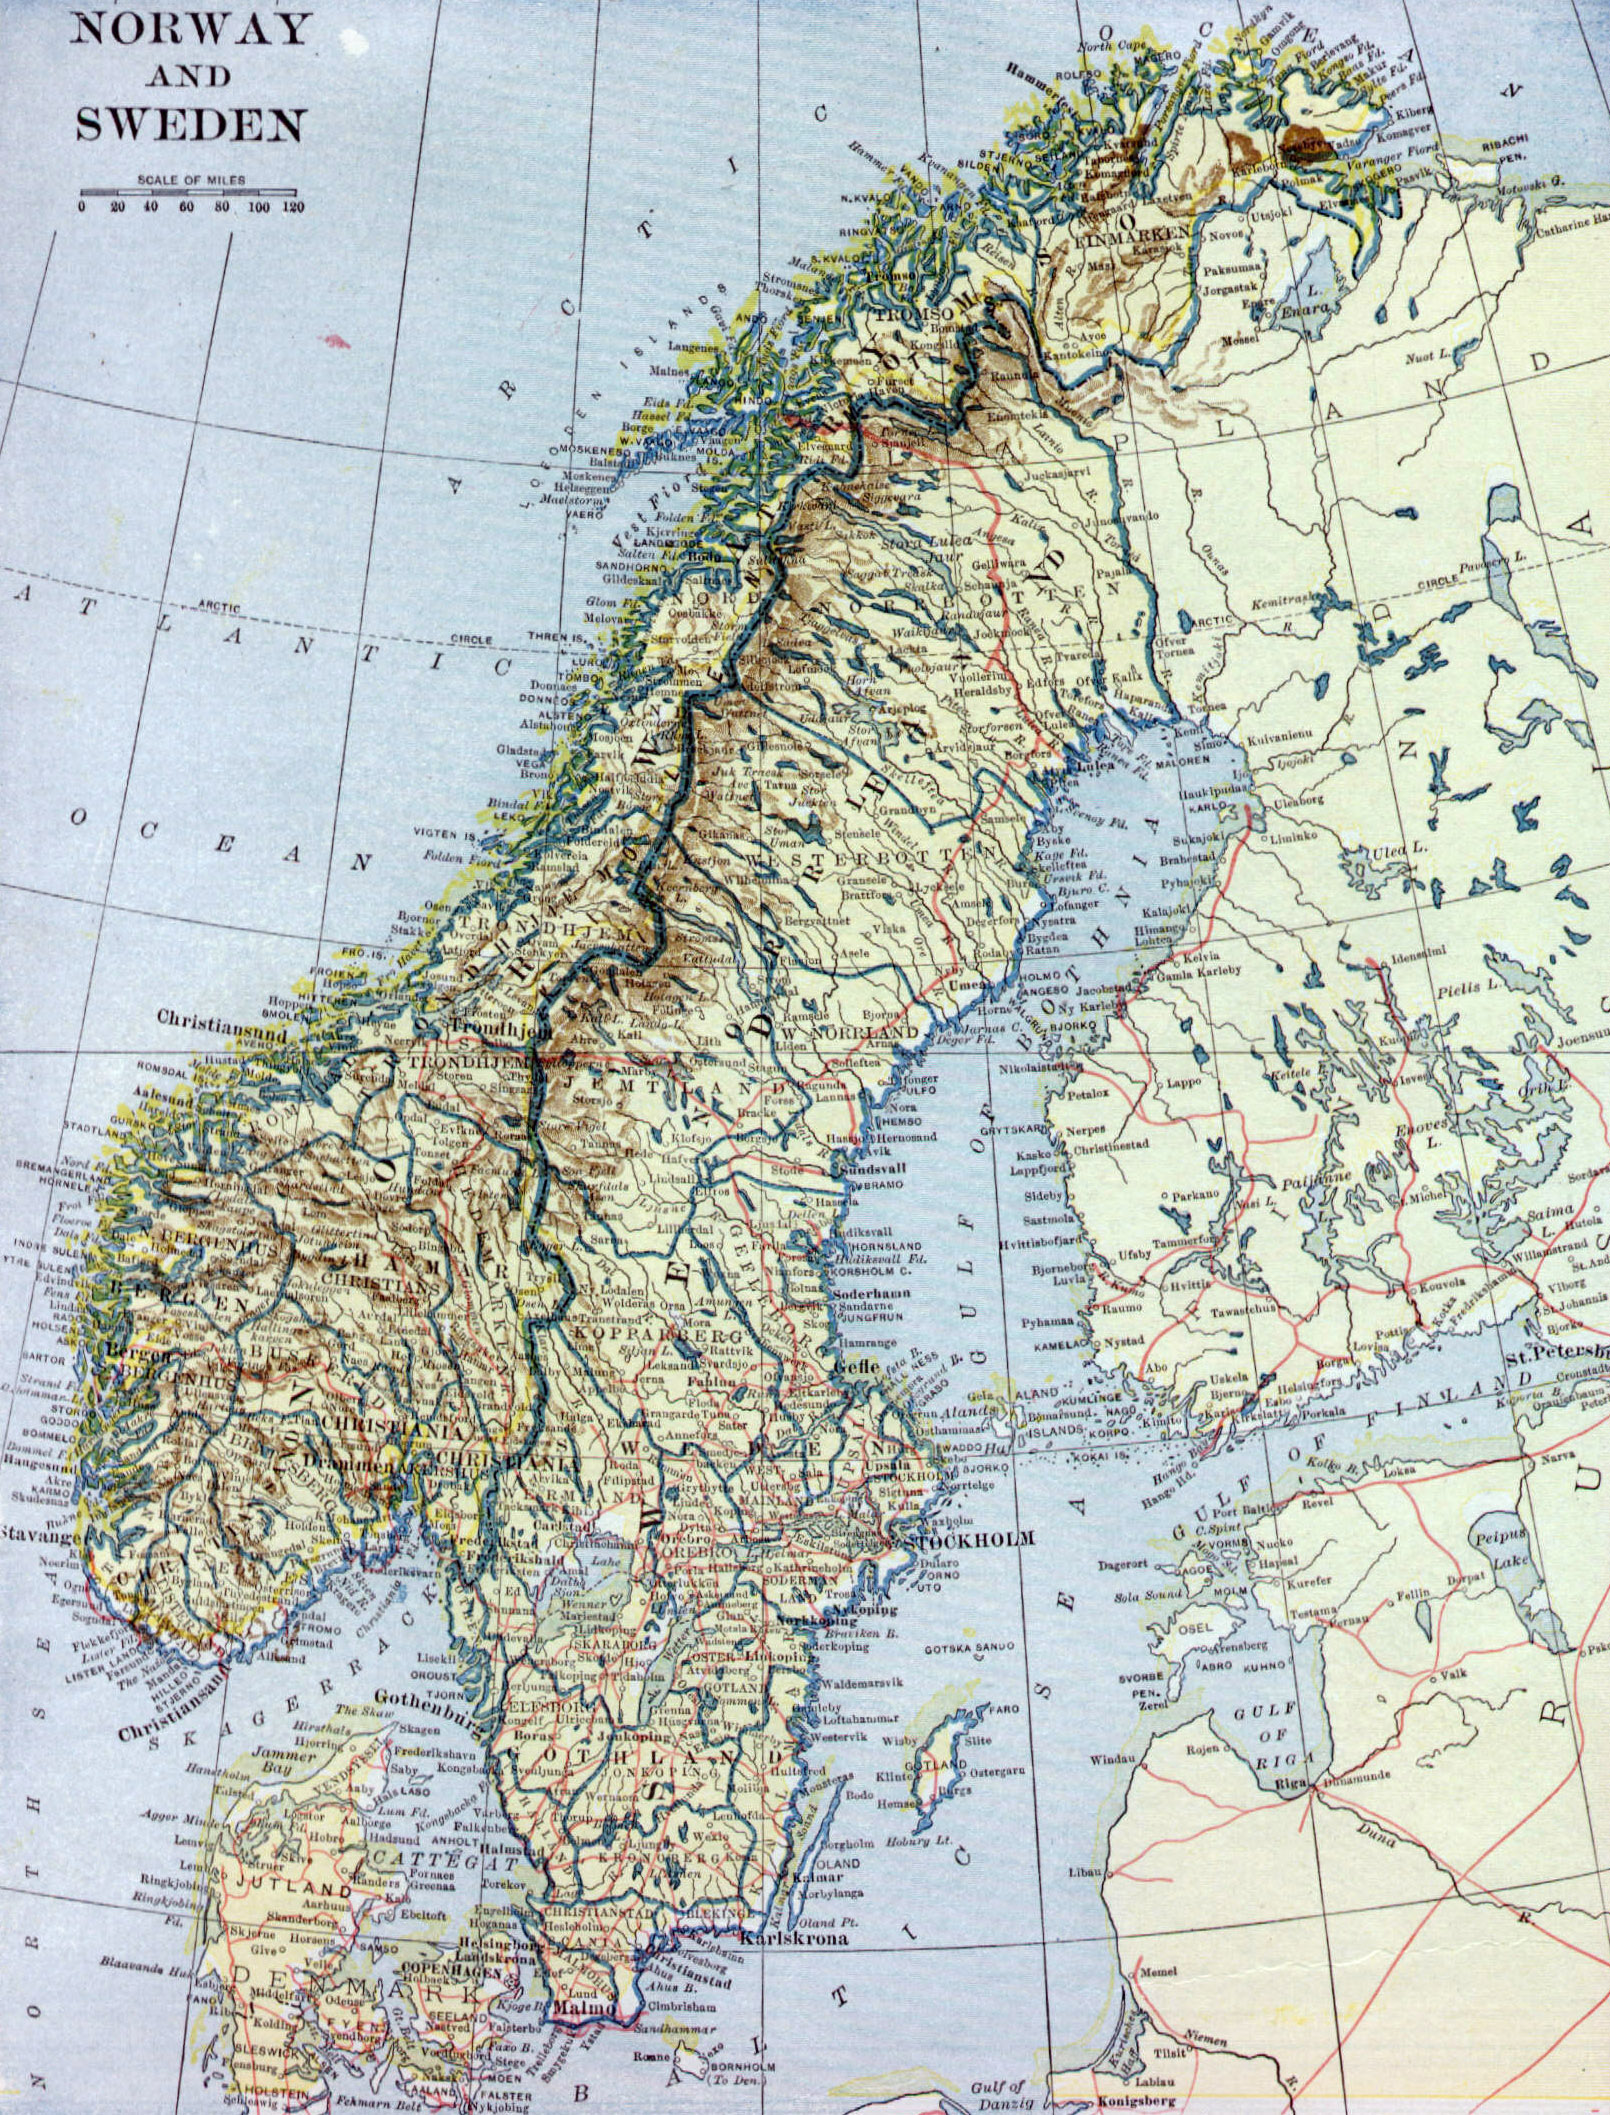 Large Old Map Of Norway And Sweden With Relief Roads And Cities - Norway map cities